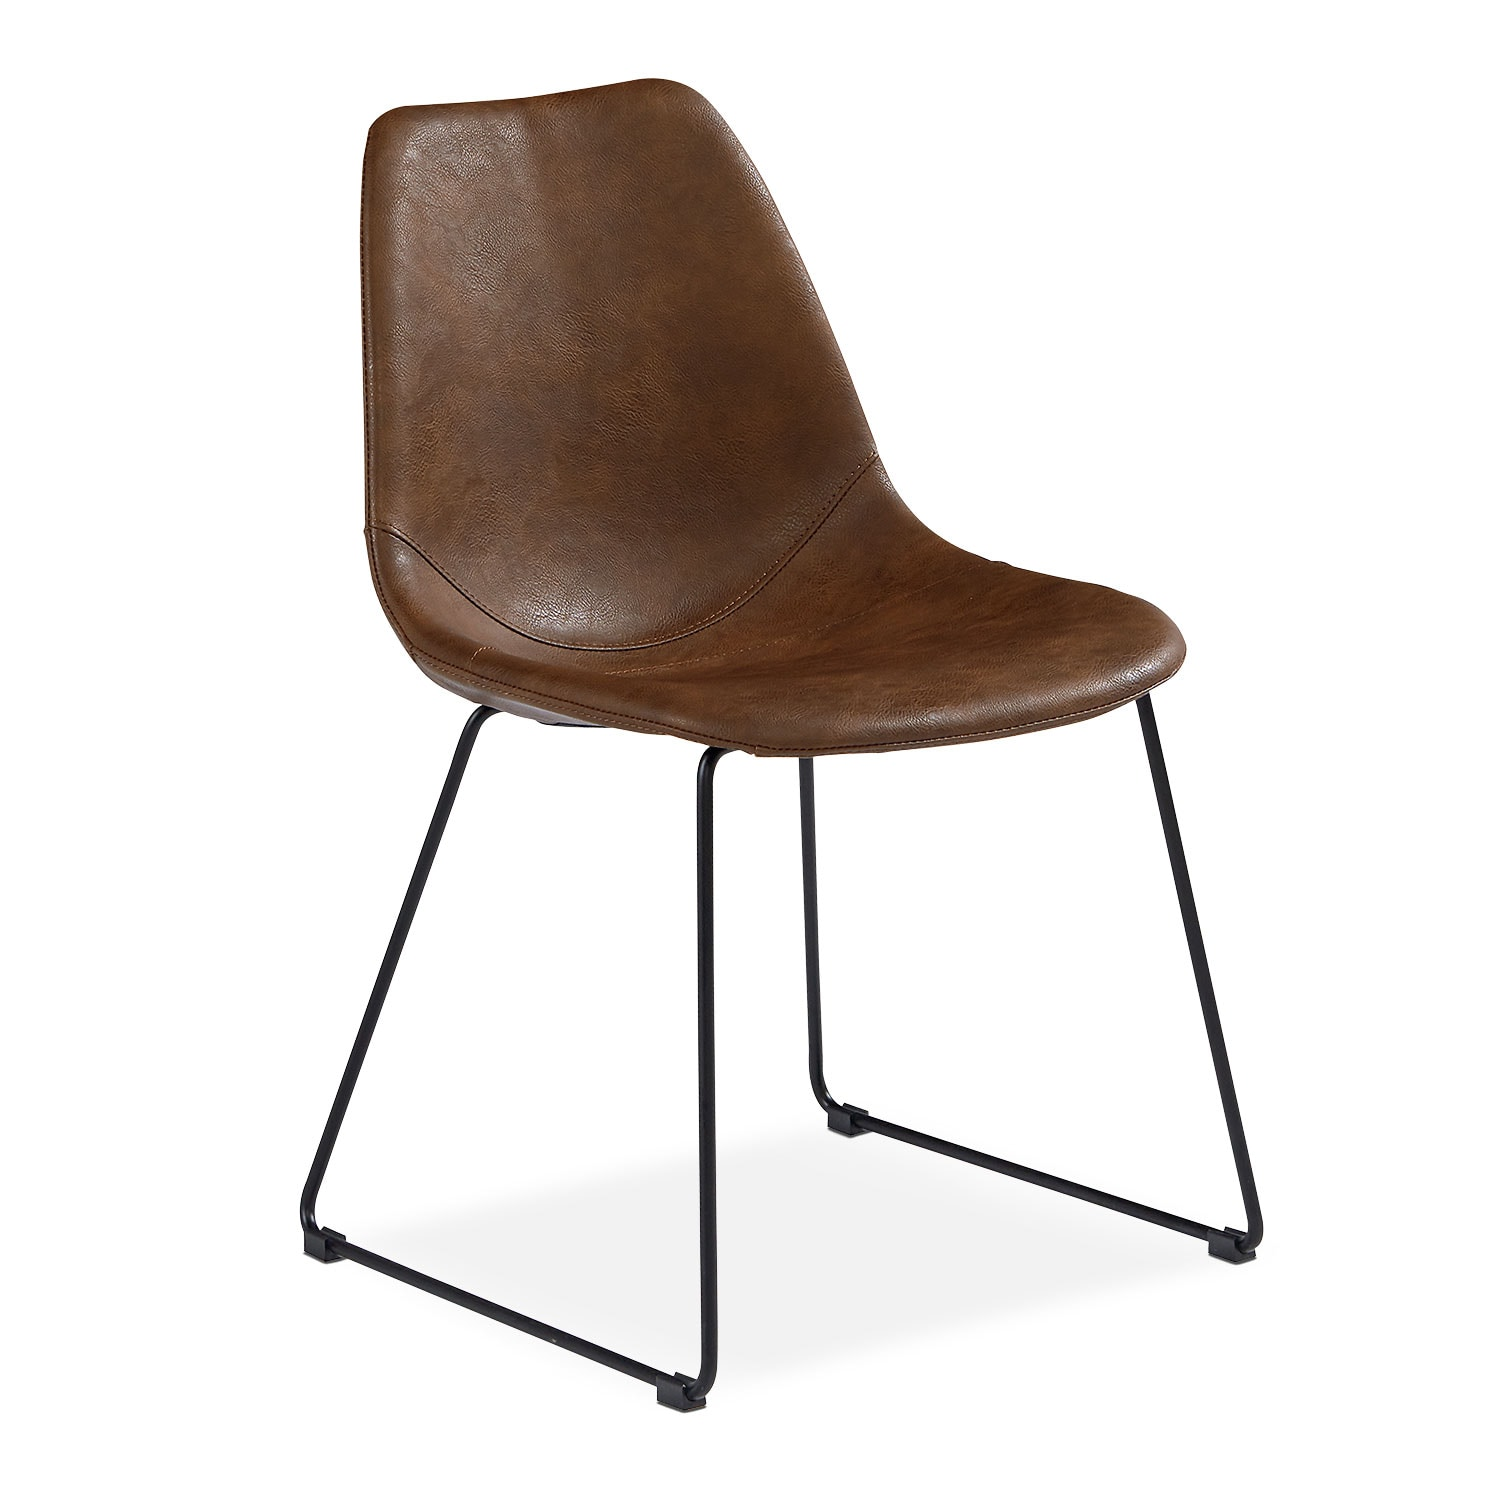 Dining Room Furniture - Molded Shell Side Chair